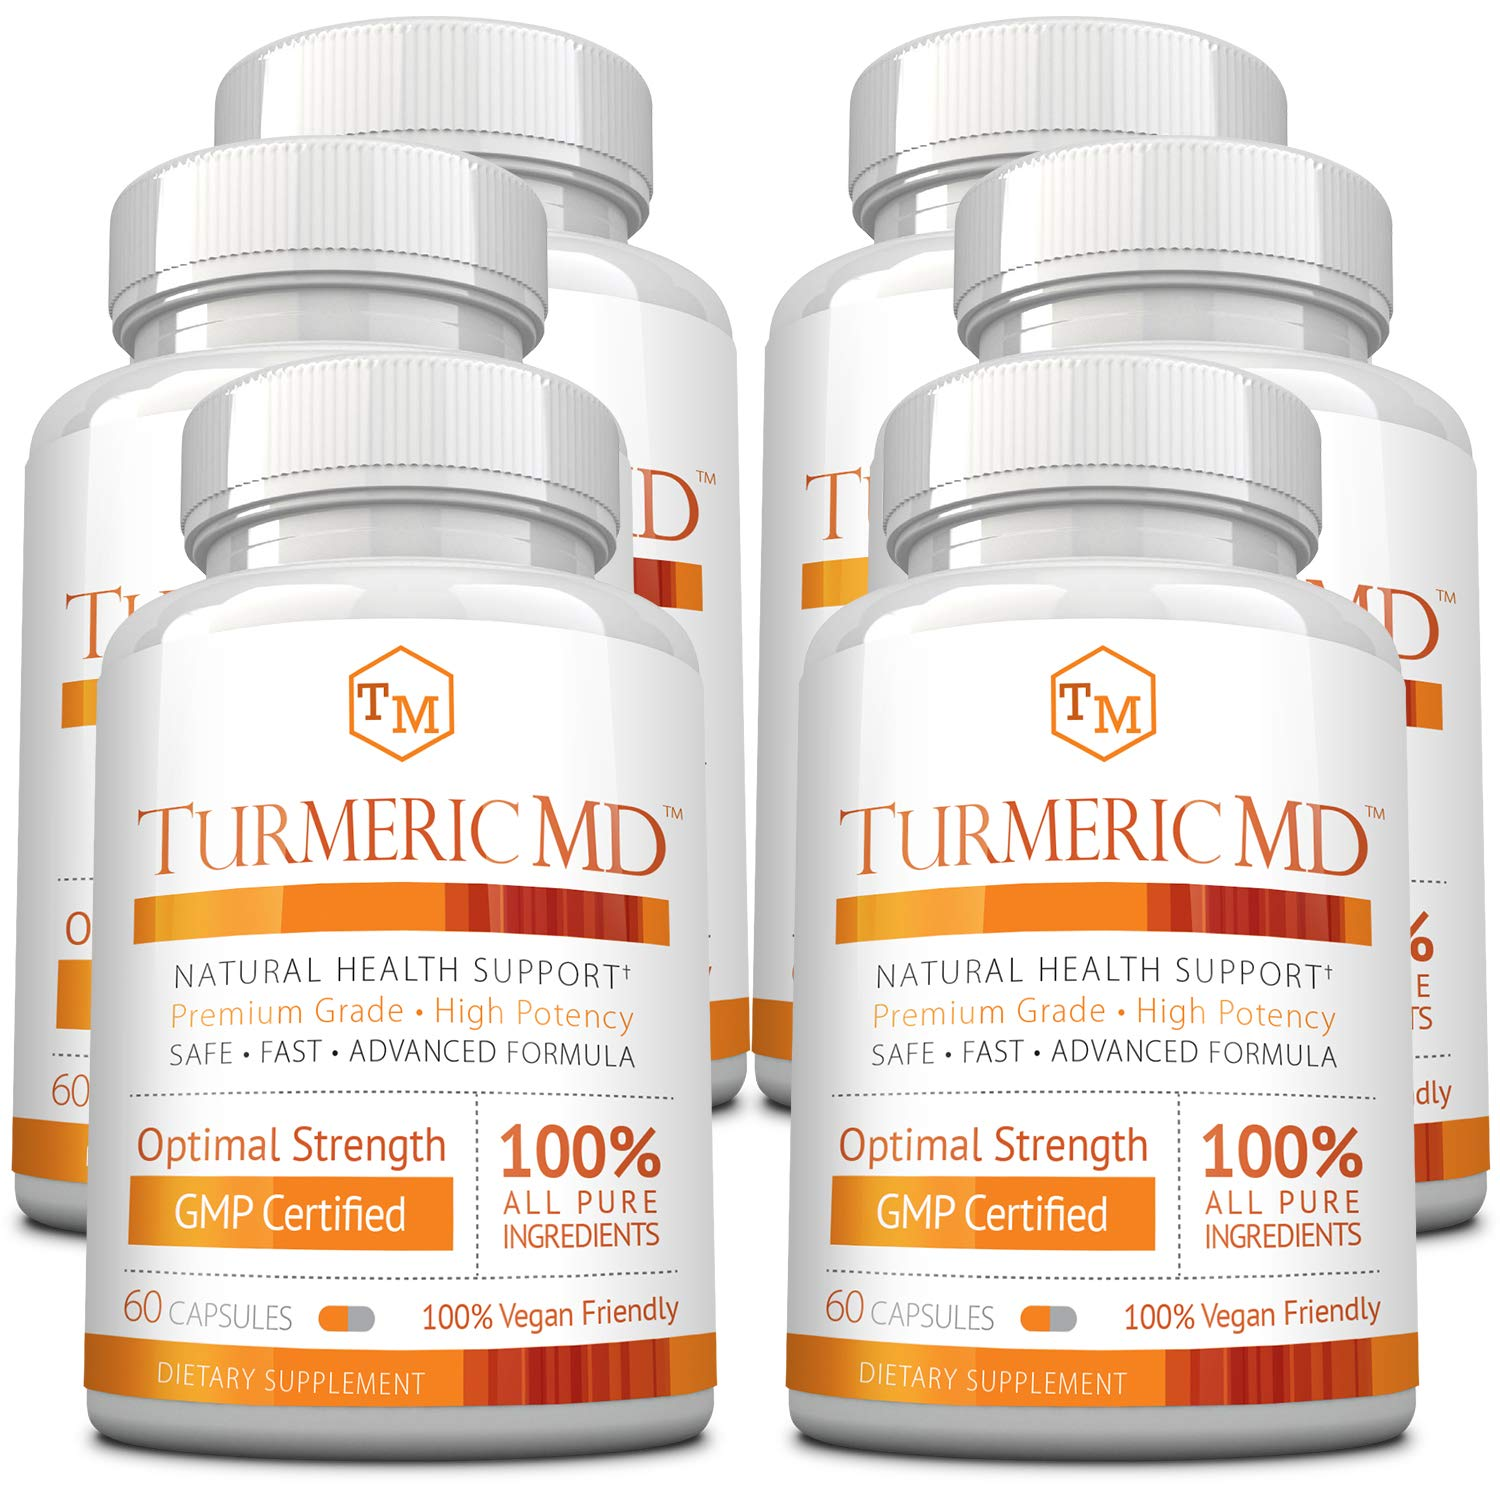 Turmeric MD - with BioPerine & 95% Standardized Turmeric Curcuminoids - Natural Anti-Inflammatory, Antioxidant, Pain Relief and Antidepressant - 360 Capsules (6 Months Supply)